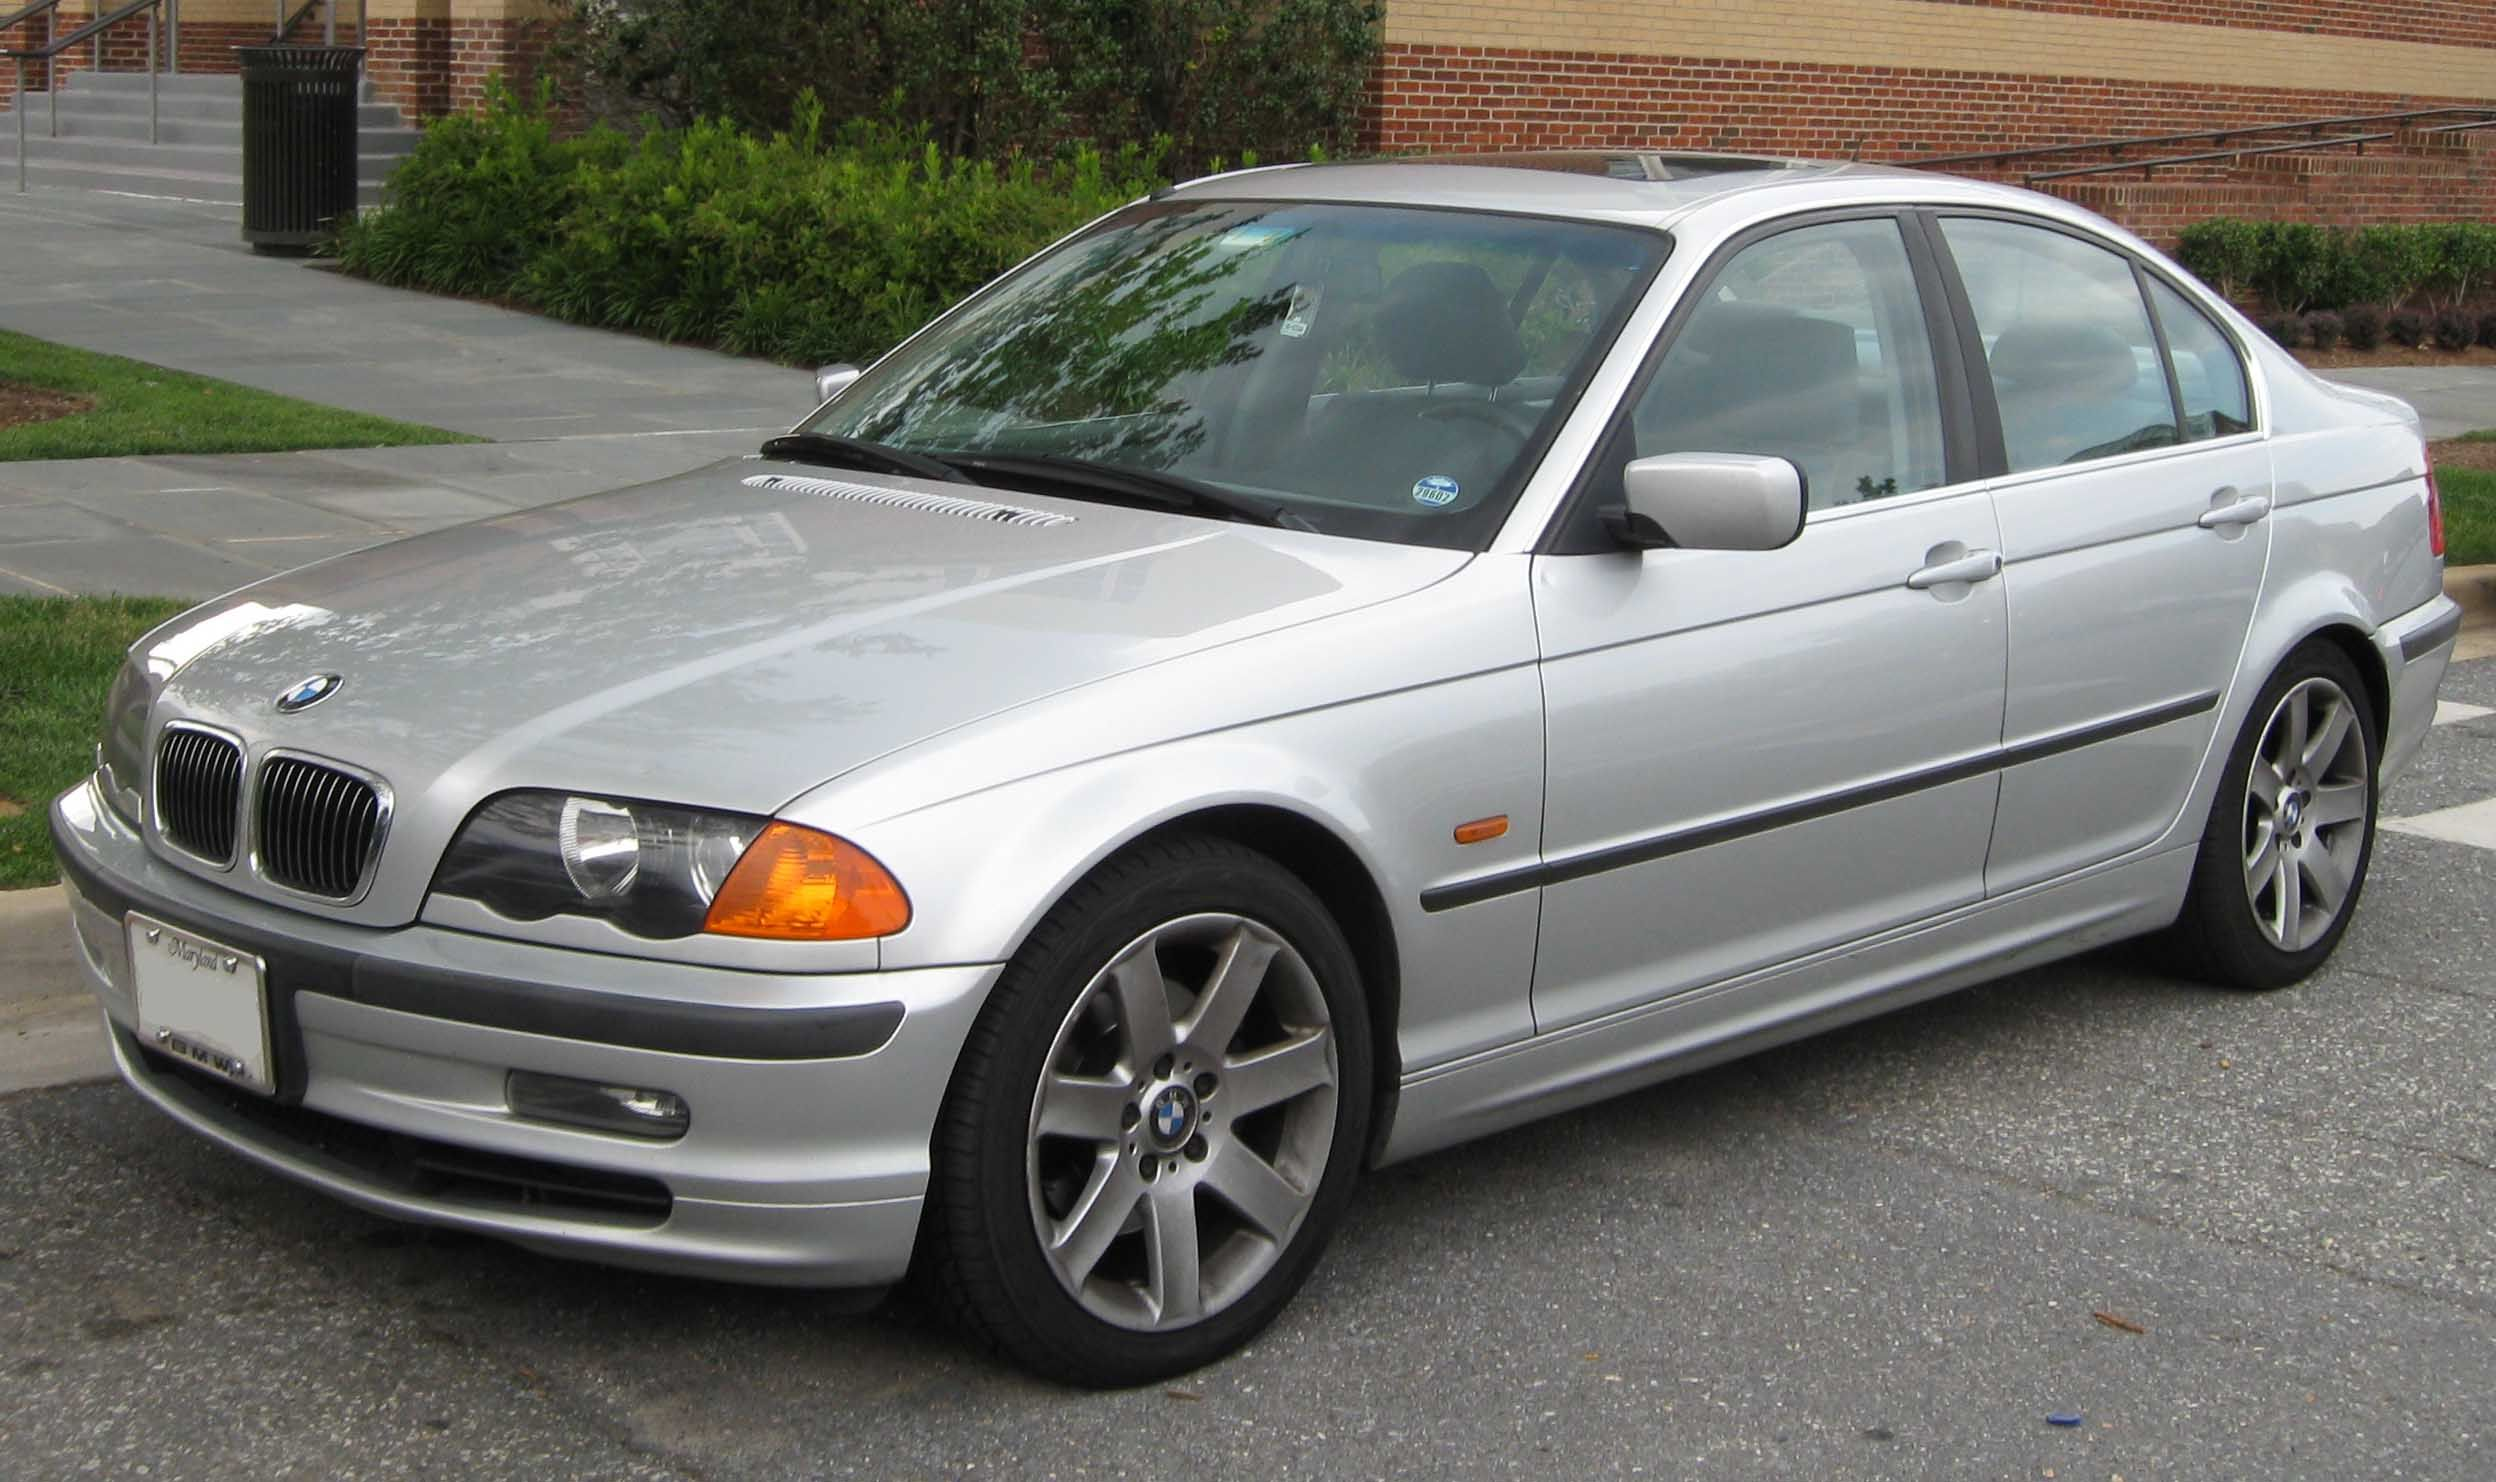 1998 bmw 328i sedan come check out amsoil synthetic motor oil for european cars at [ 2496 x 1482 Pixel ]